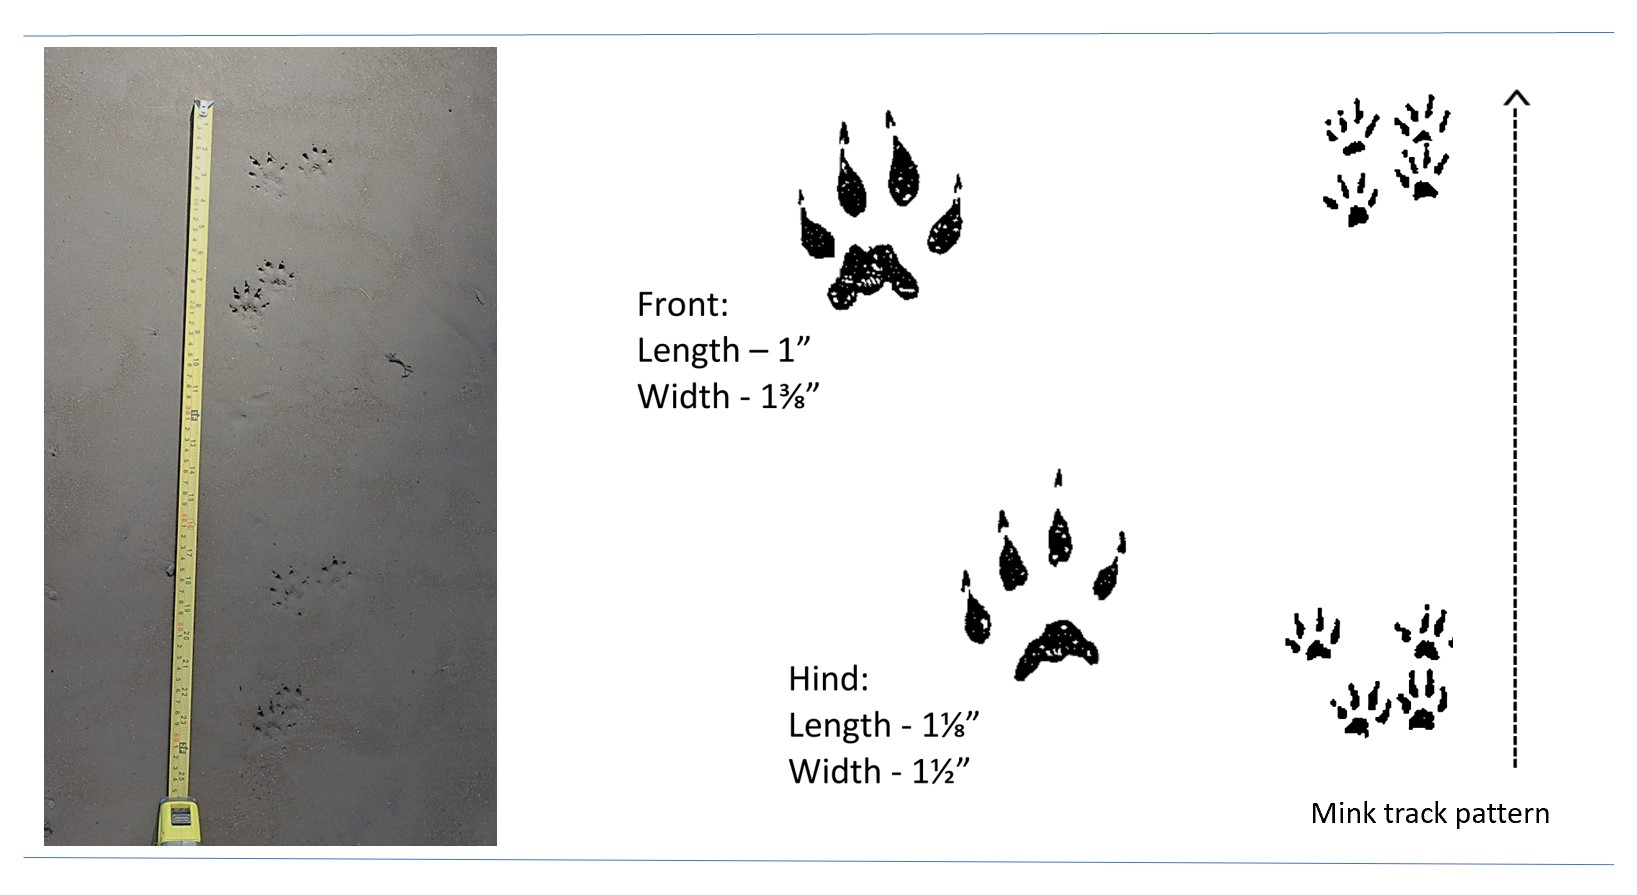 Photo and illustrated tracks of an American mink.